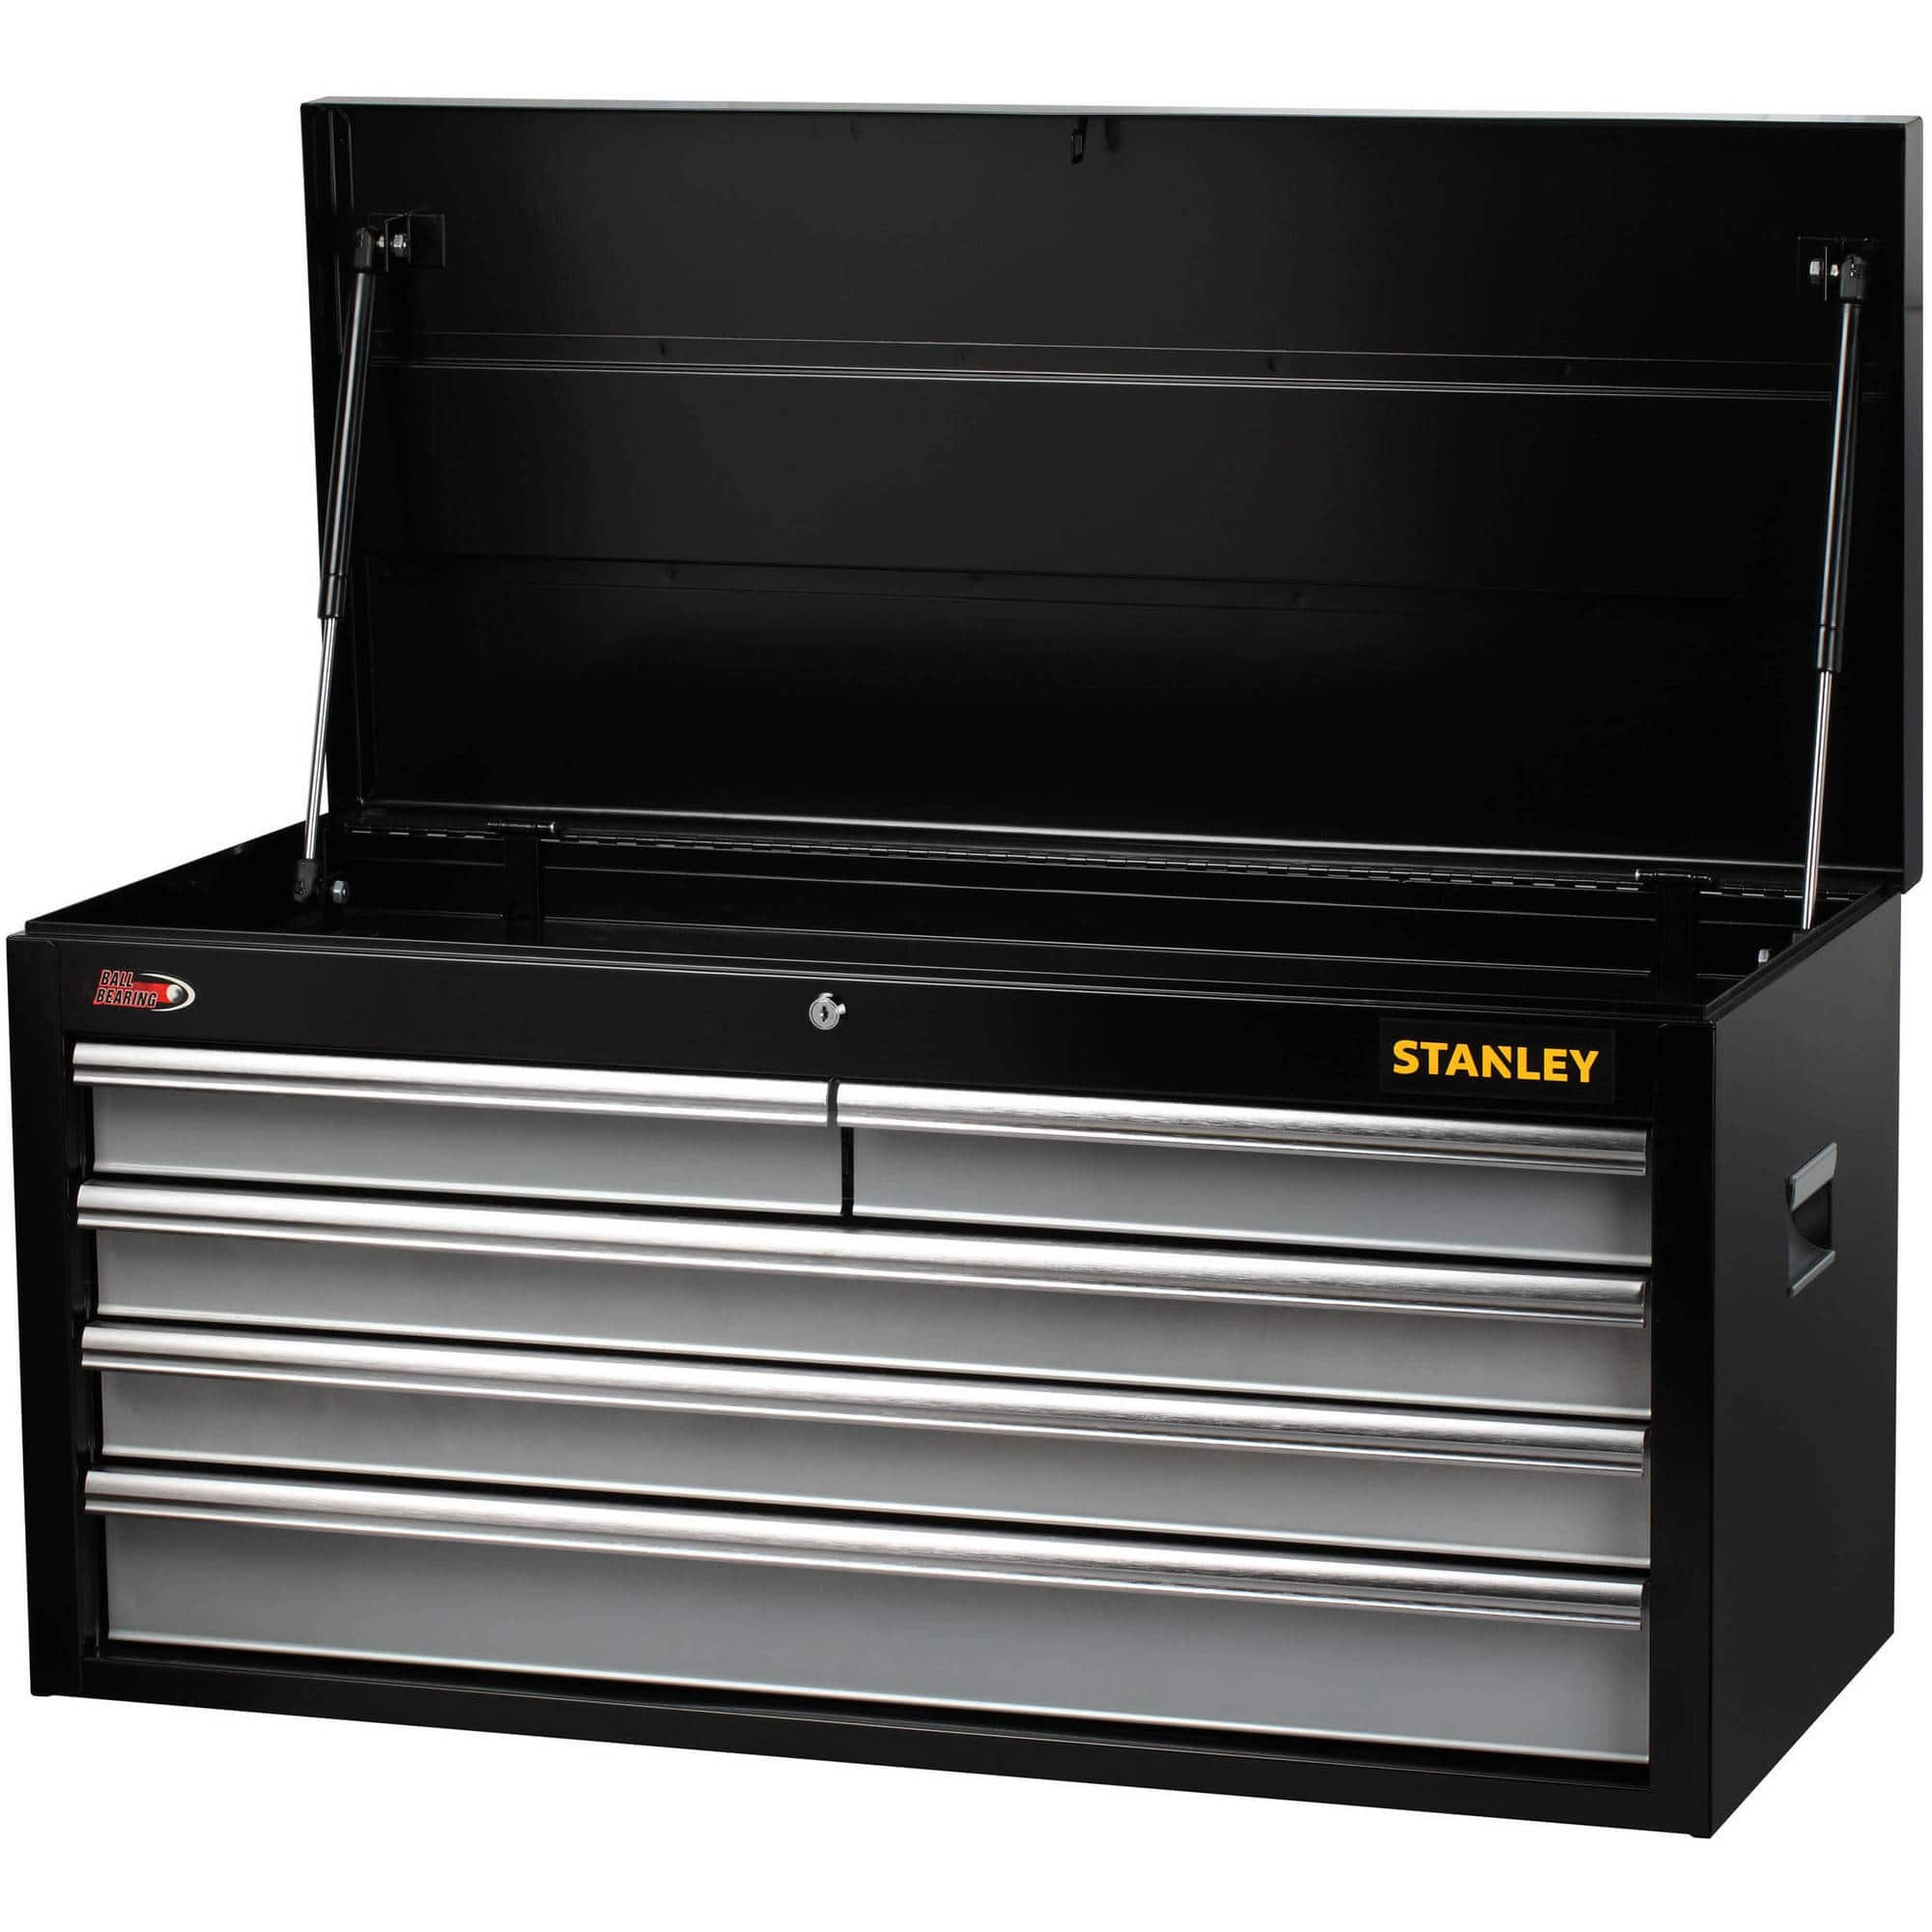 stanley 40 5 drawer tool chest on clearance at walmart for 89